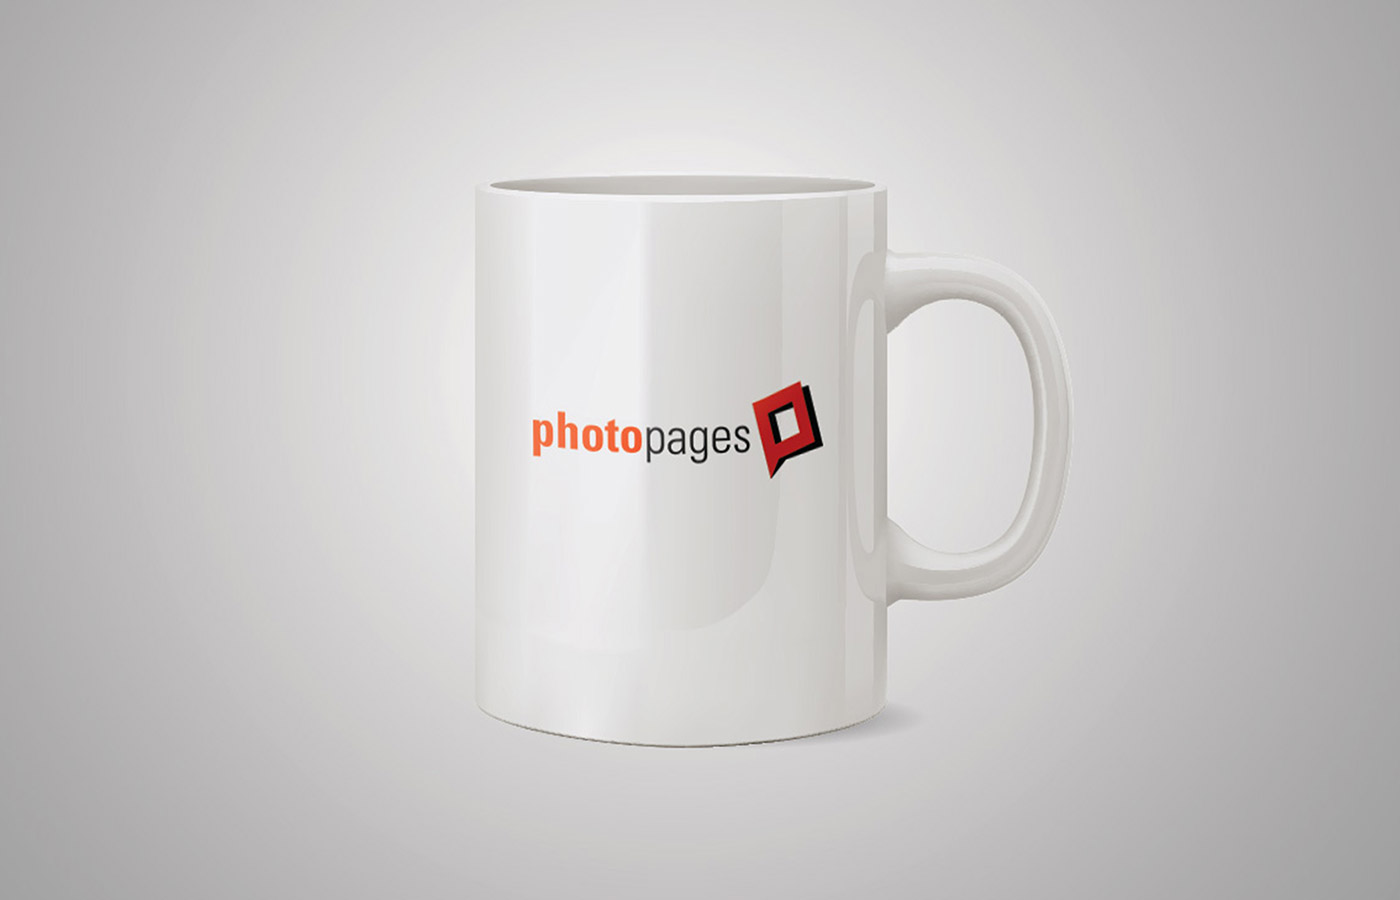 Photopages